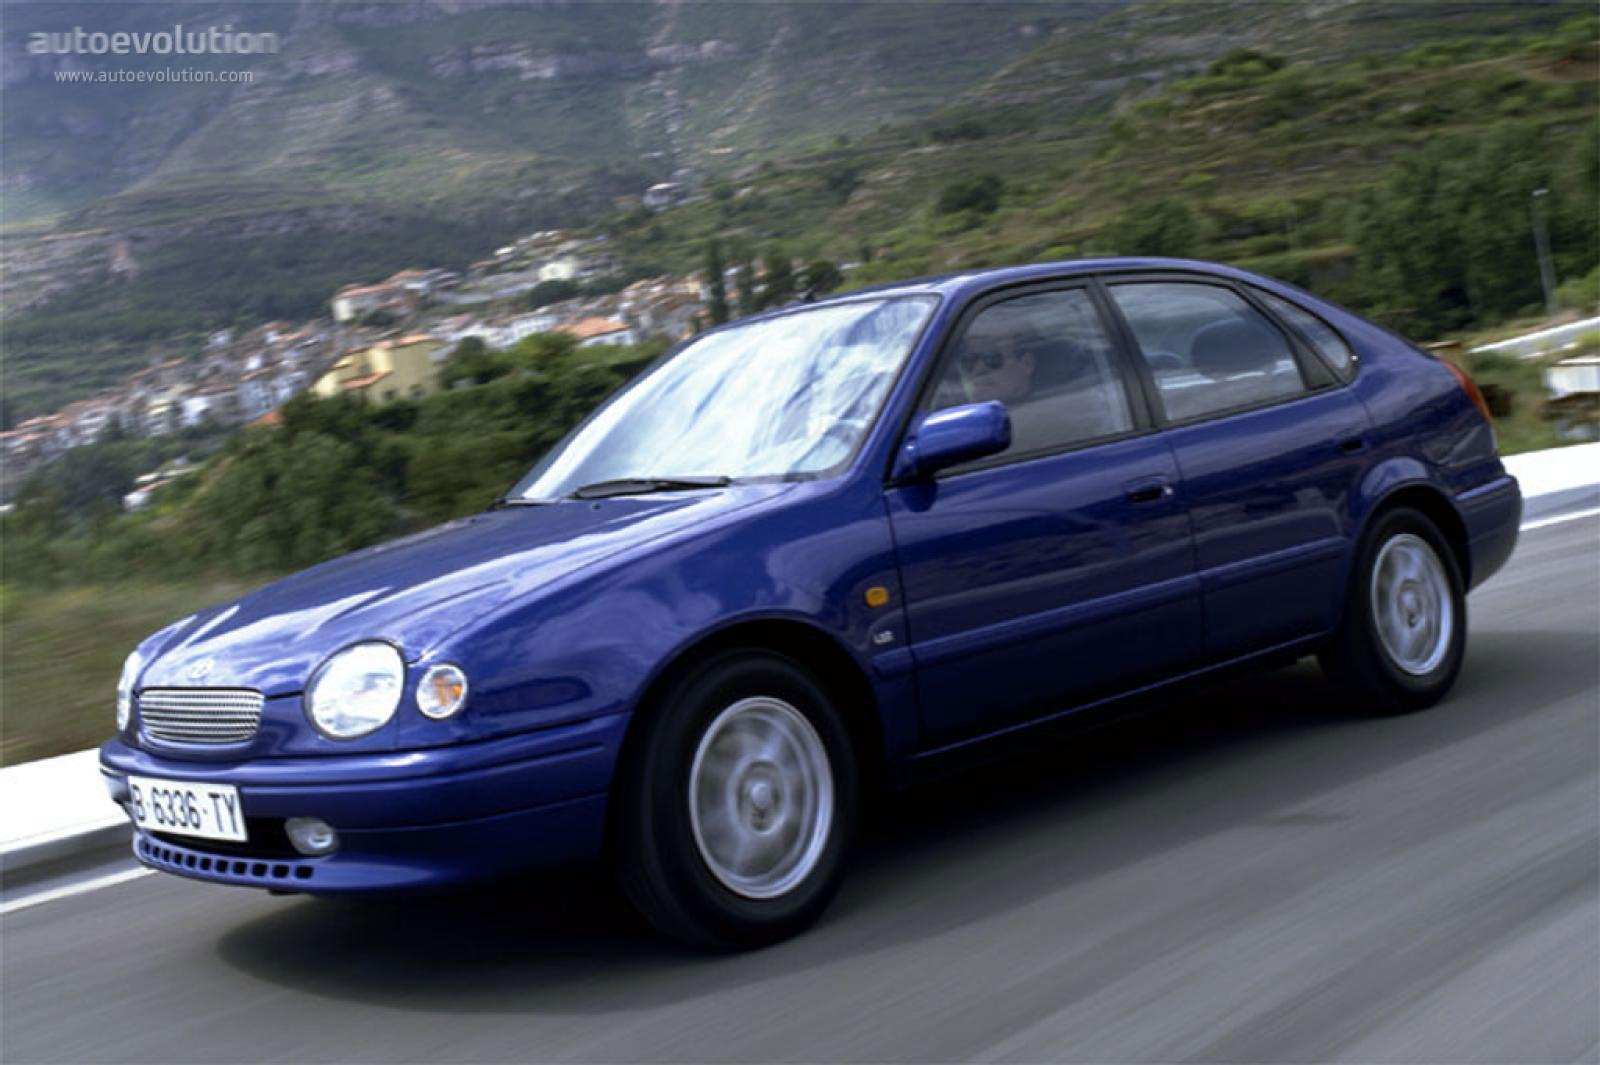 1997 Toyota Corolla Information And Photos Zomb Drive